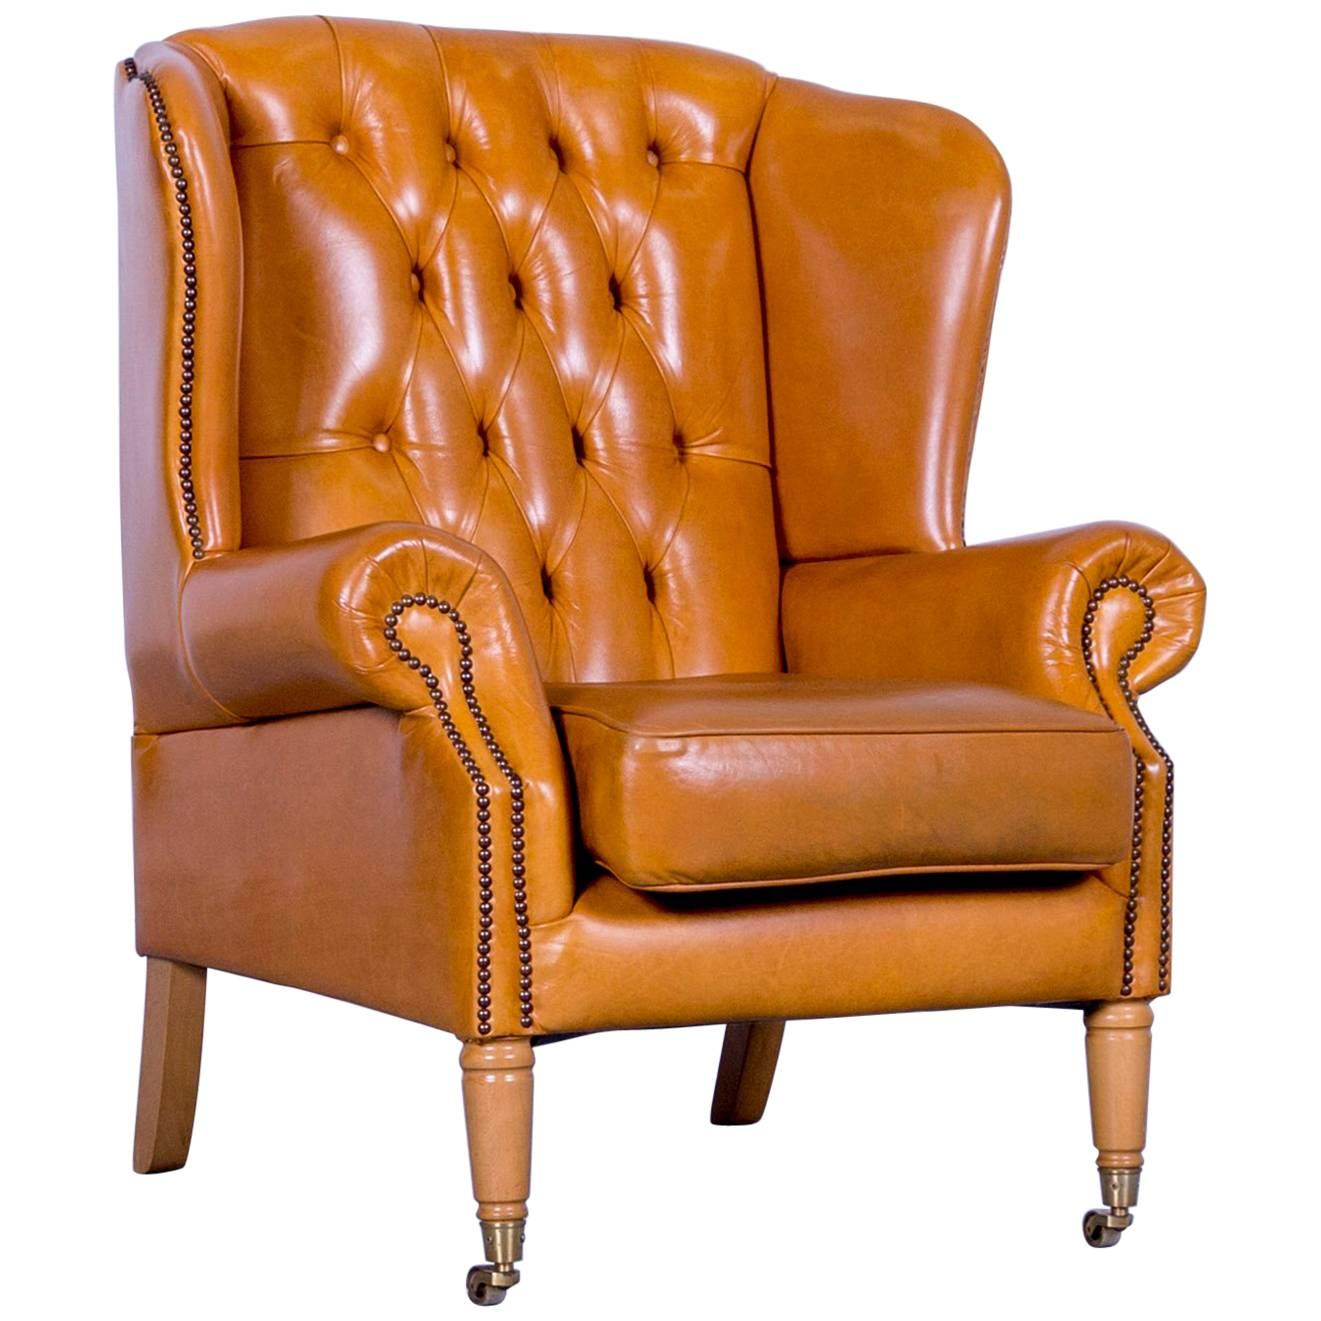 Chesterfield Armchair Leather Yellow One Seater Vintage For Sale